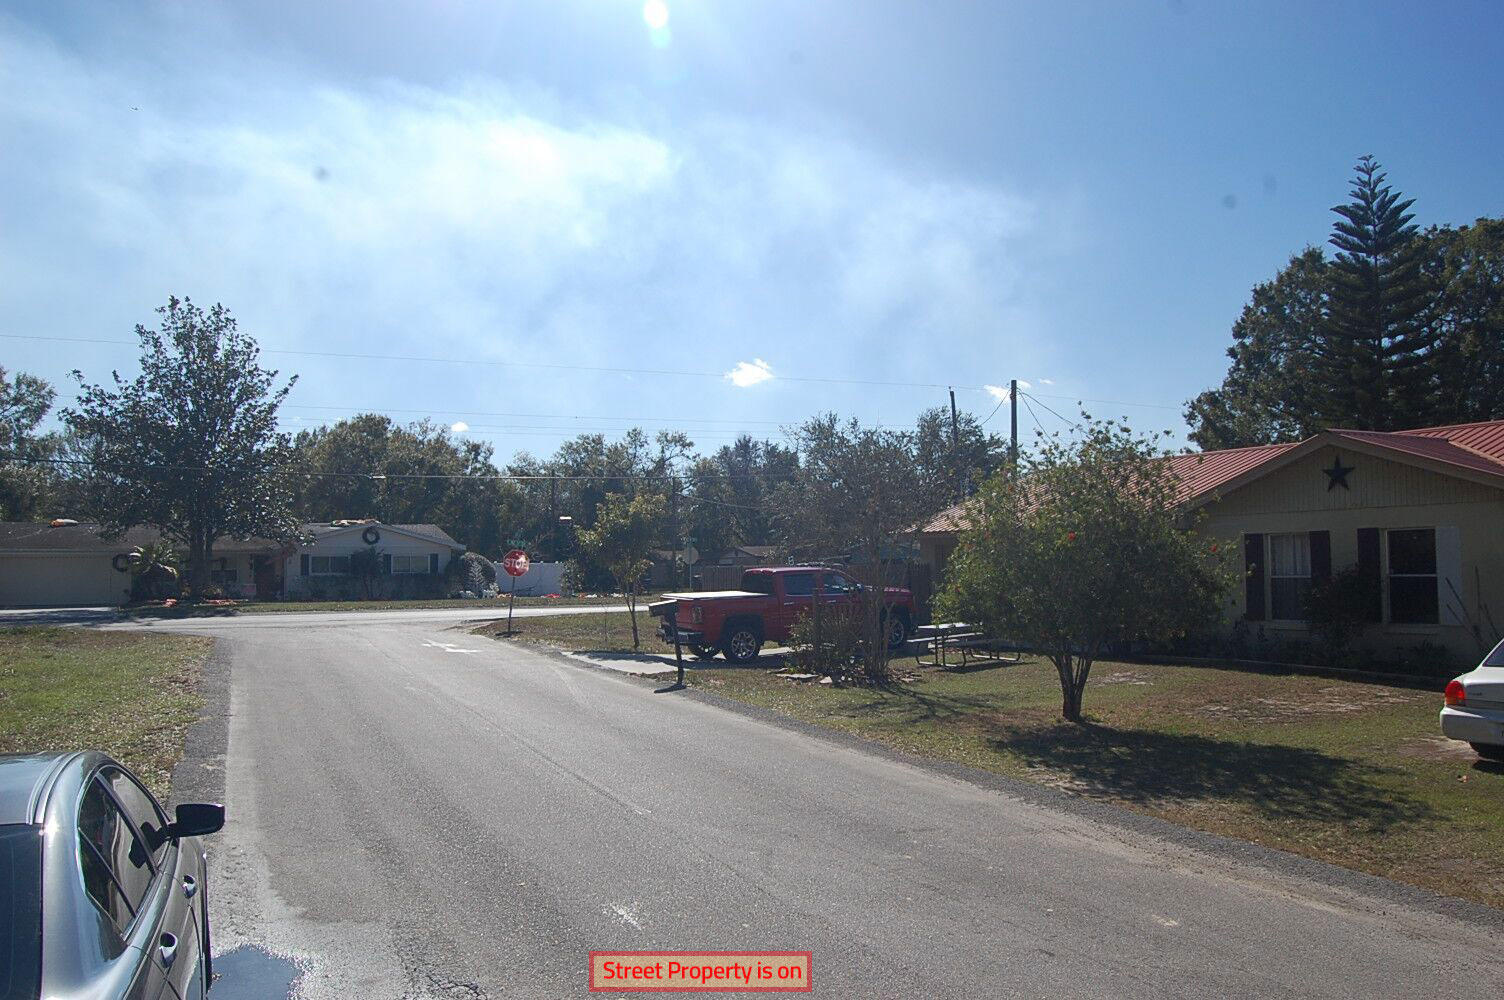 Property on NE 4th Ave in Beautiful Mulberry Florida - Image 3